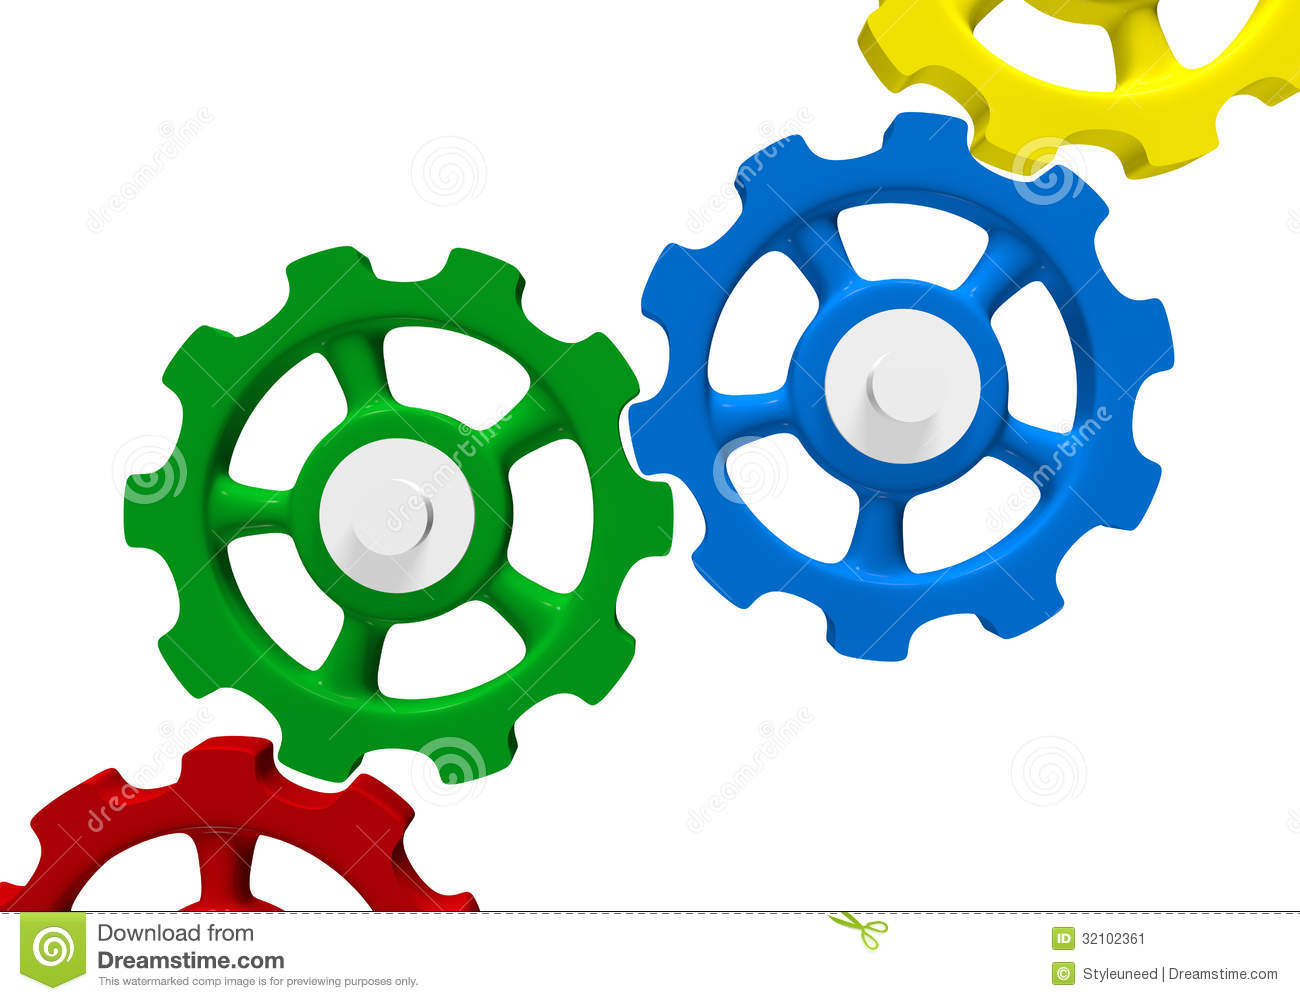 Colored interlocking gears stock illustration. Illustration of.